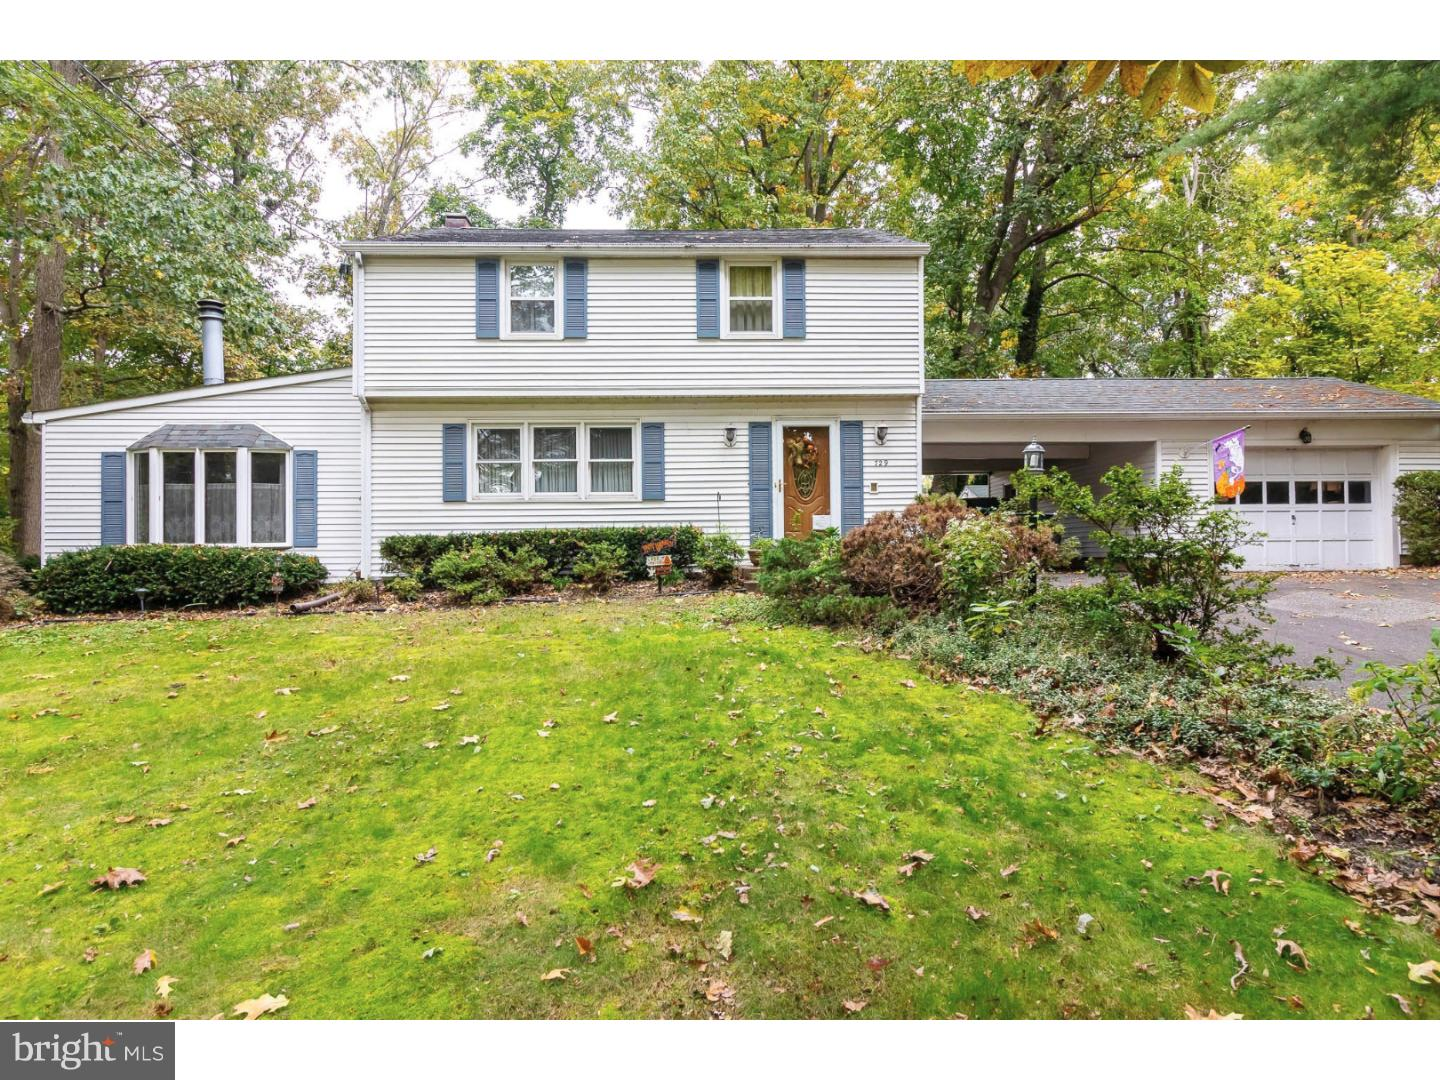 729 WOODLAND AVENUE, WOODBURY HEIGHTS, NJ 08097